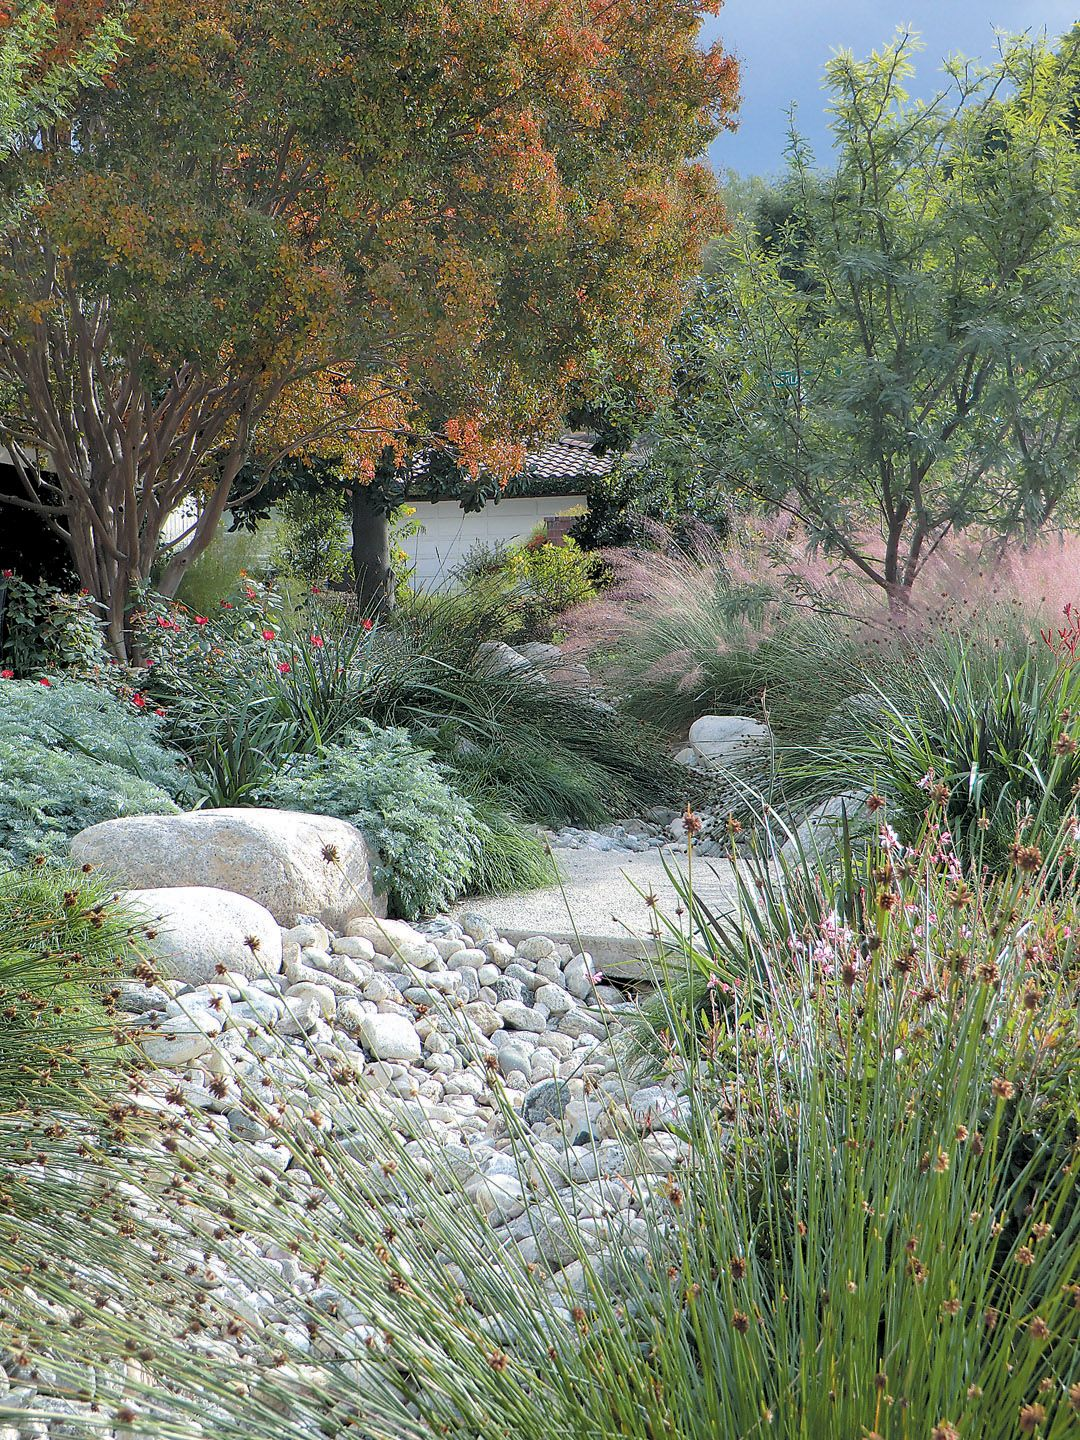 32 Stunning Low Water Landscaping Ideas For Your Garden: Lush, Colorful, And Water-wise: An Impossible Dream?